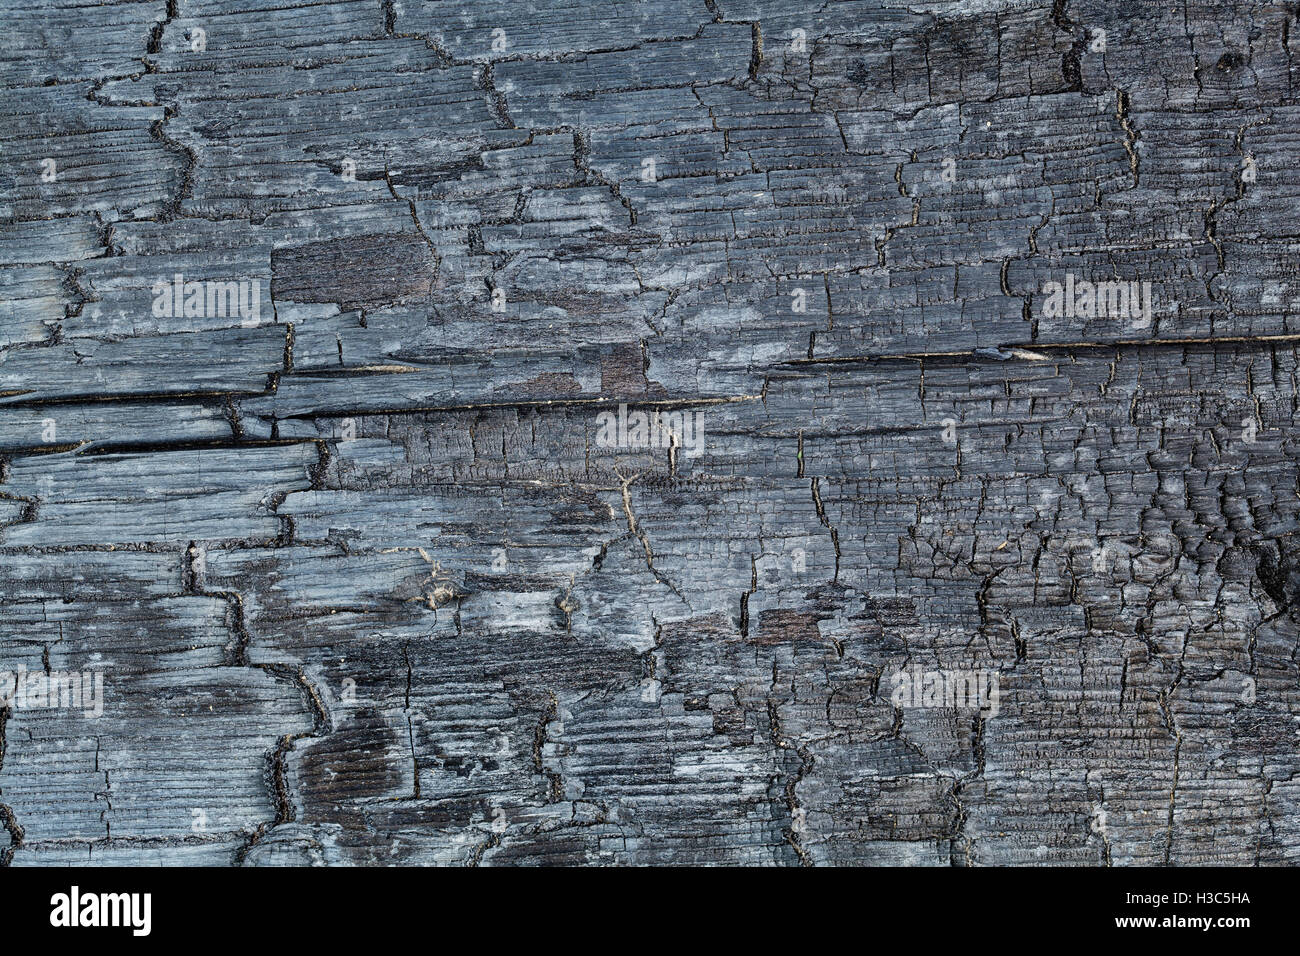 burnt wood texture photos burnt wood texture images alamy. Black Bedroom Furniture Sets. Home Design Ideas